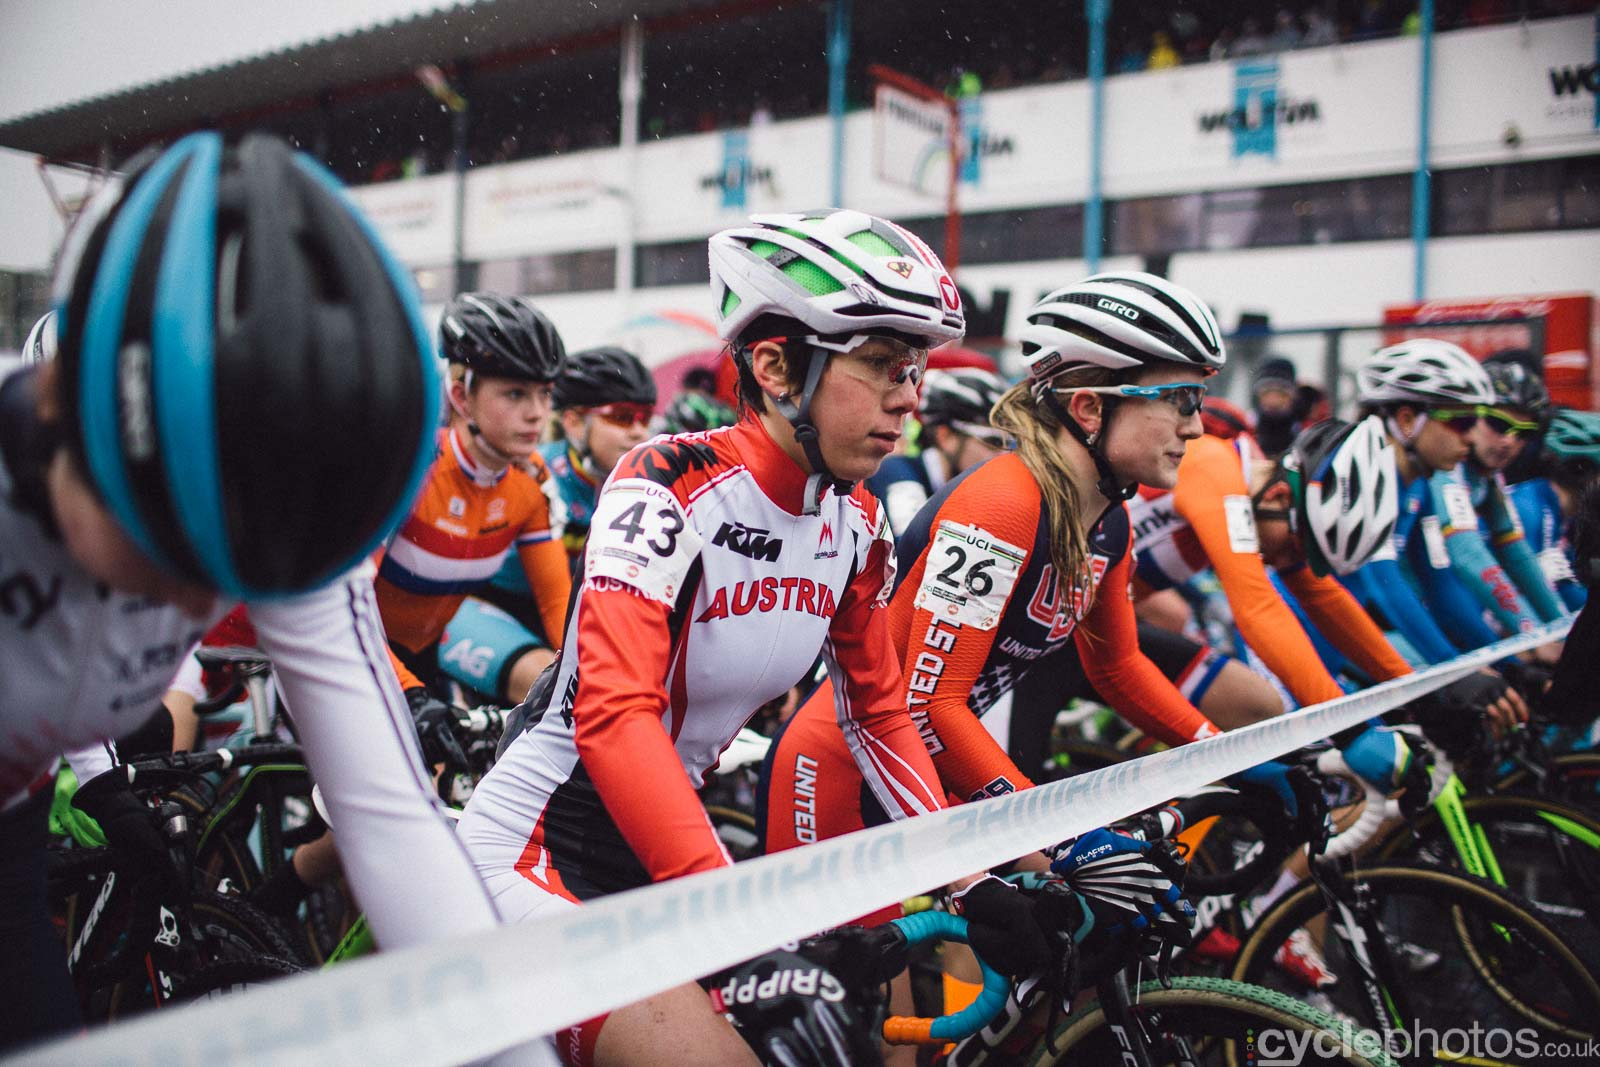 2016-cyclephotos-cyclocross-world-championships-zolder-125907-ellen-noble